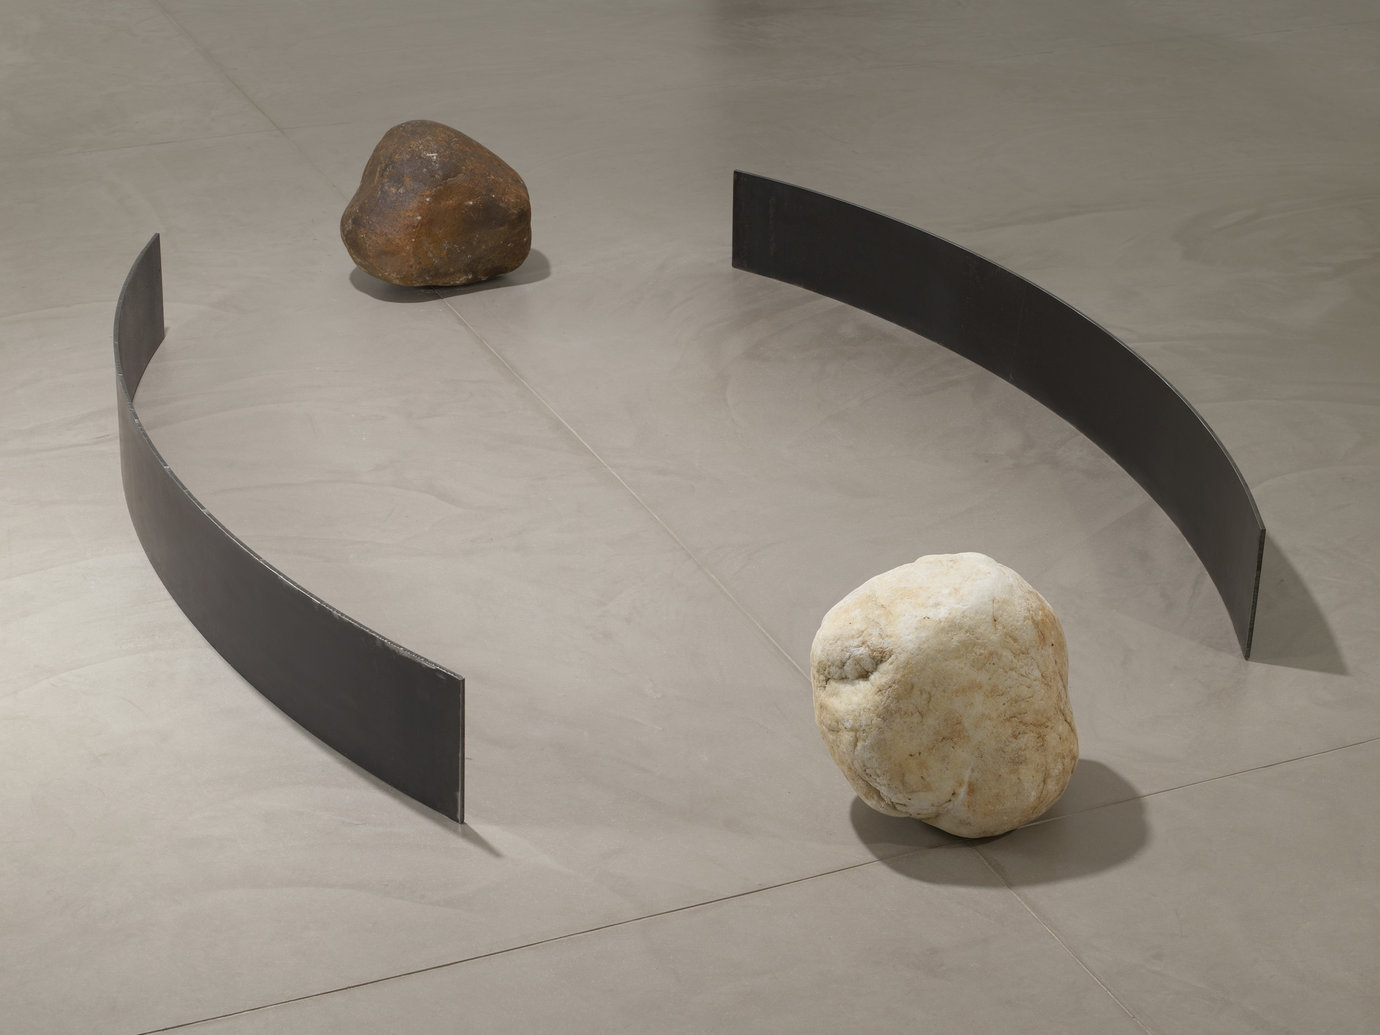 ", 2008. Steel, stone, 10"" x 87"" x 10-1/2"" (25.4 cm x 221 cm x 26.7 cm), 2 steel plates, each&#x000A;15"" x 18"" x 16"" (38.1 cm x 45.7 cm x 40.6 cm), dark stone&#x000A;15"" x 15"" x 12"" (38.1 cm x 38.1 cm x 30.5 cm), light stone."